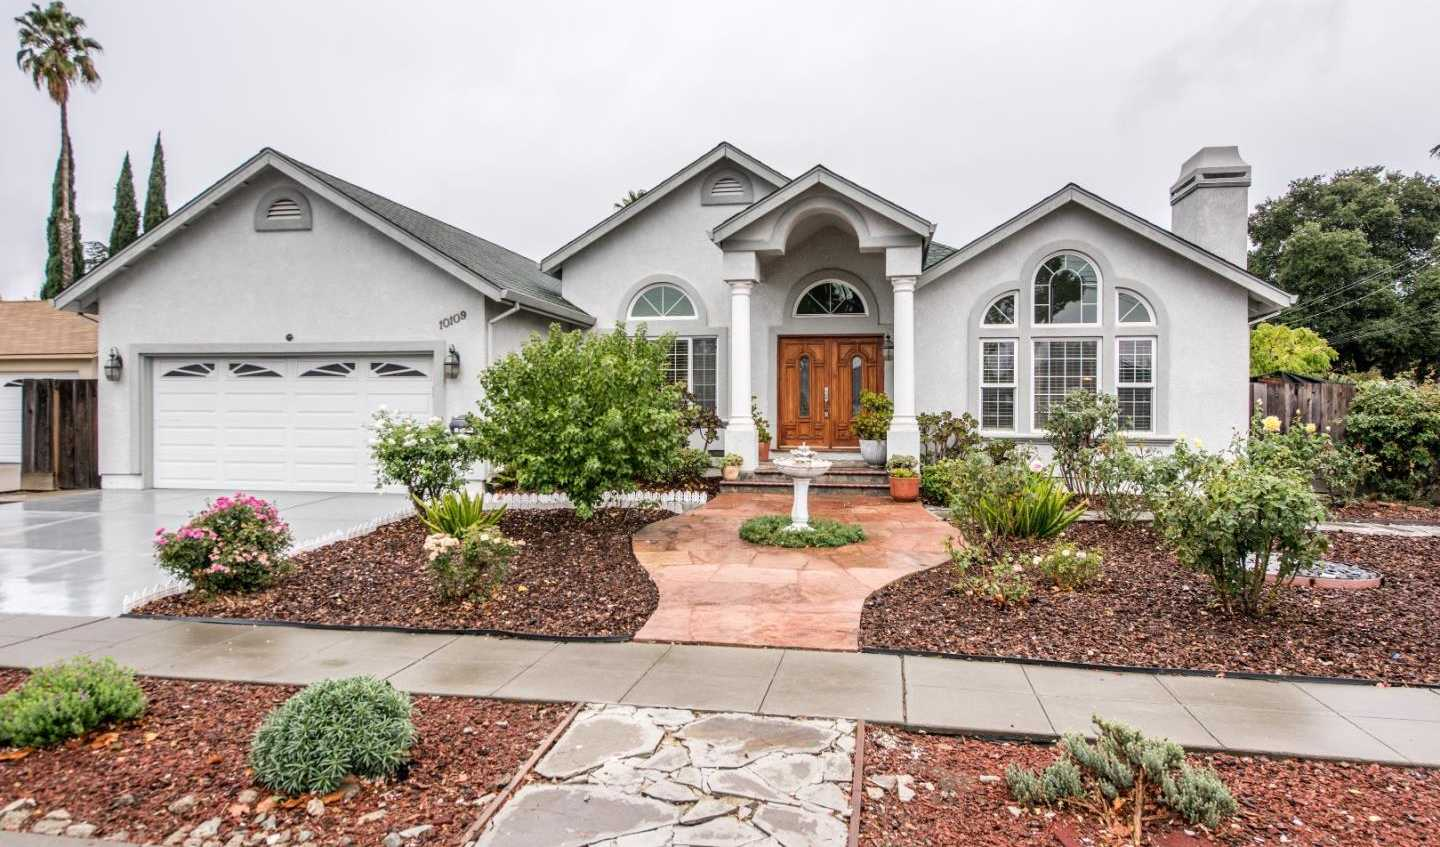 $2,999,000 - 5Br/4Ba -  for Sale in Cupertino